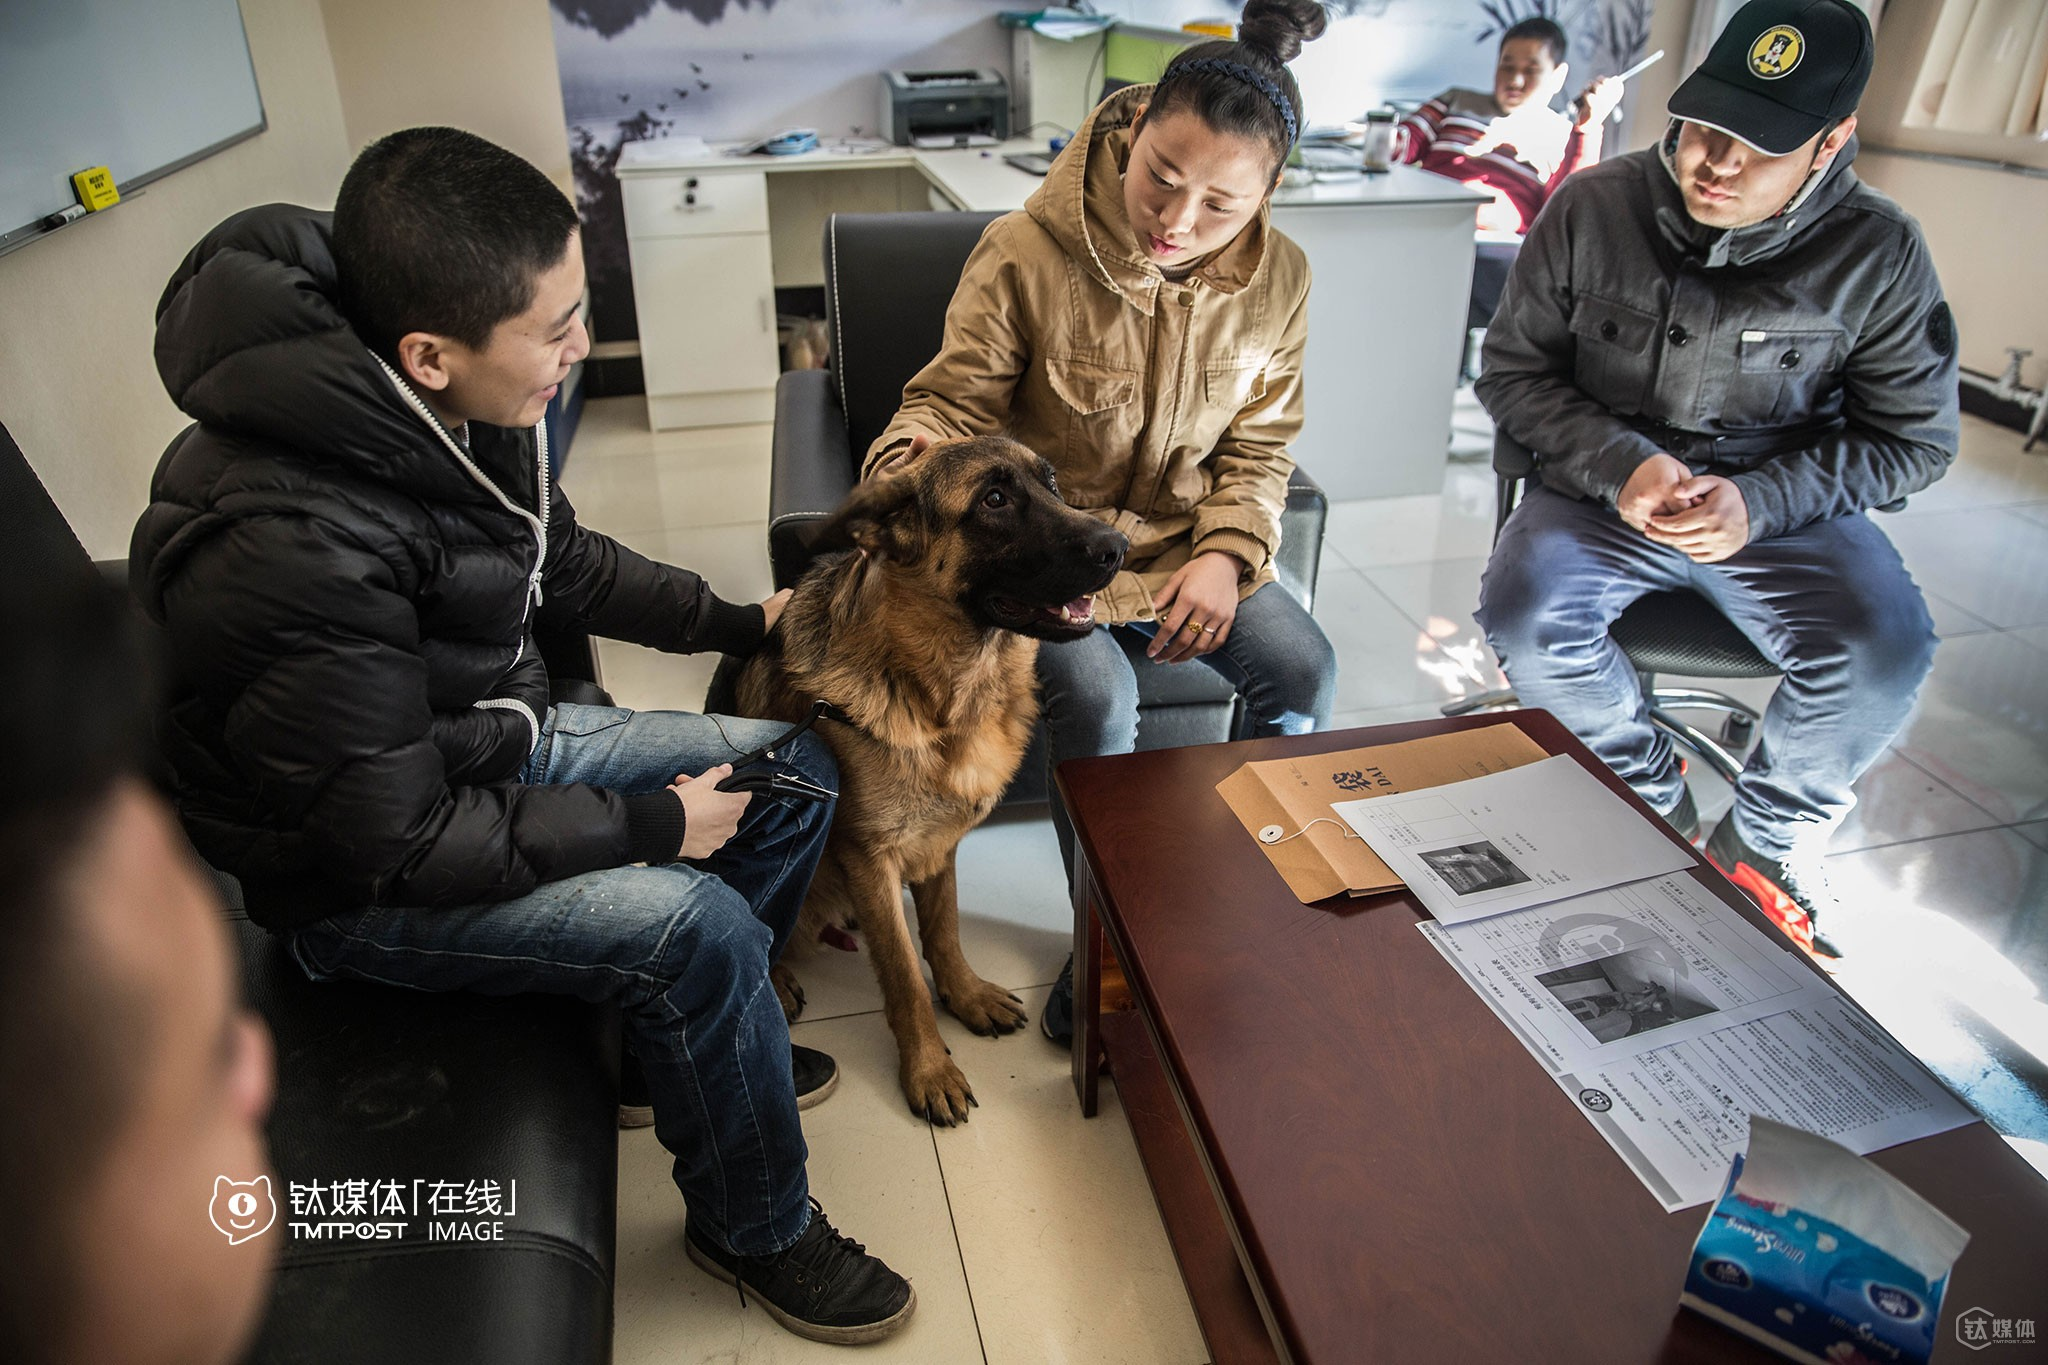 On February 19th, 2016, a user got back the German Shepherd dog kept in the DogSchool during the Spring Festival. At present, the school charges users with 60 to 100 RMB based on the size of the dog. In addition, the DogSchool also provides DogBus service and offers special discount.